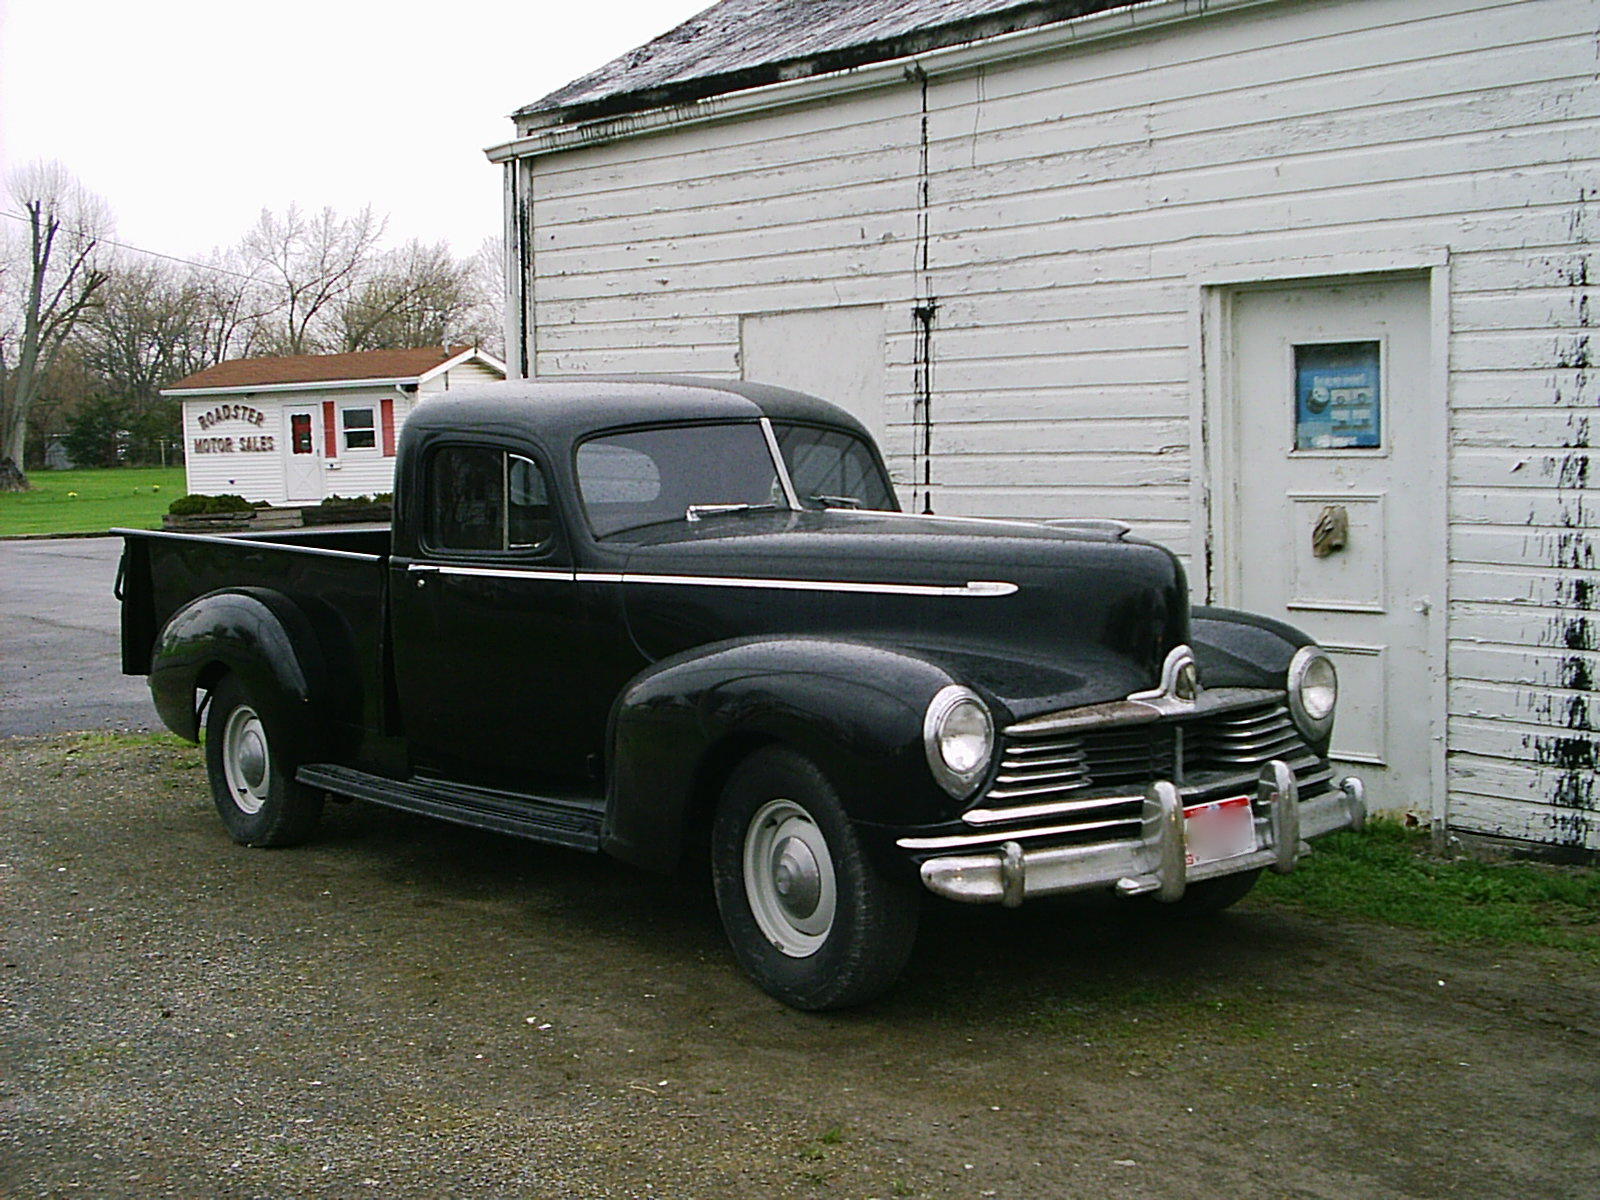 Curbside Classic: 1946 Hudson Pickup (with a surprise!)